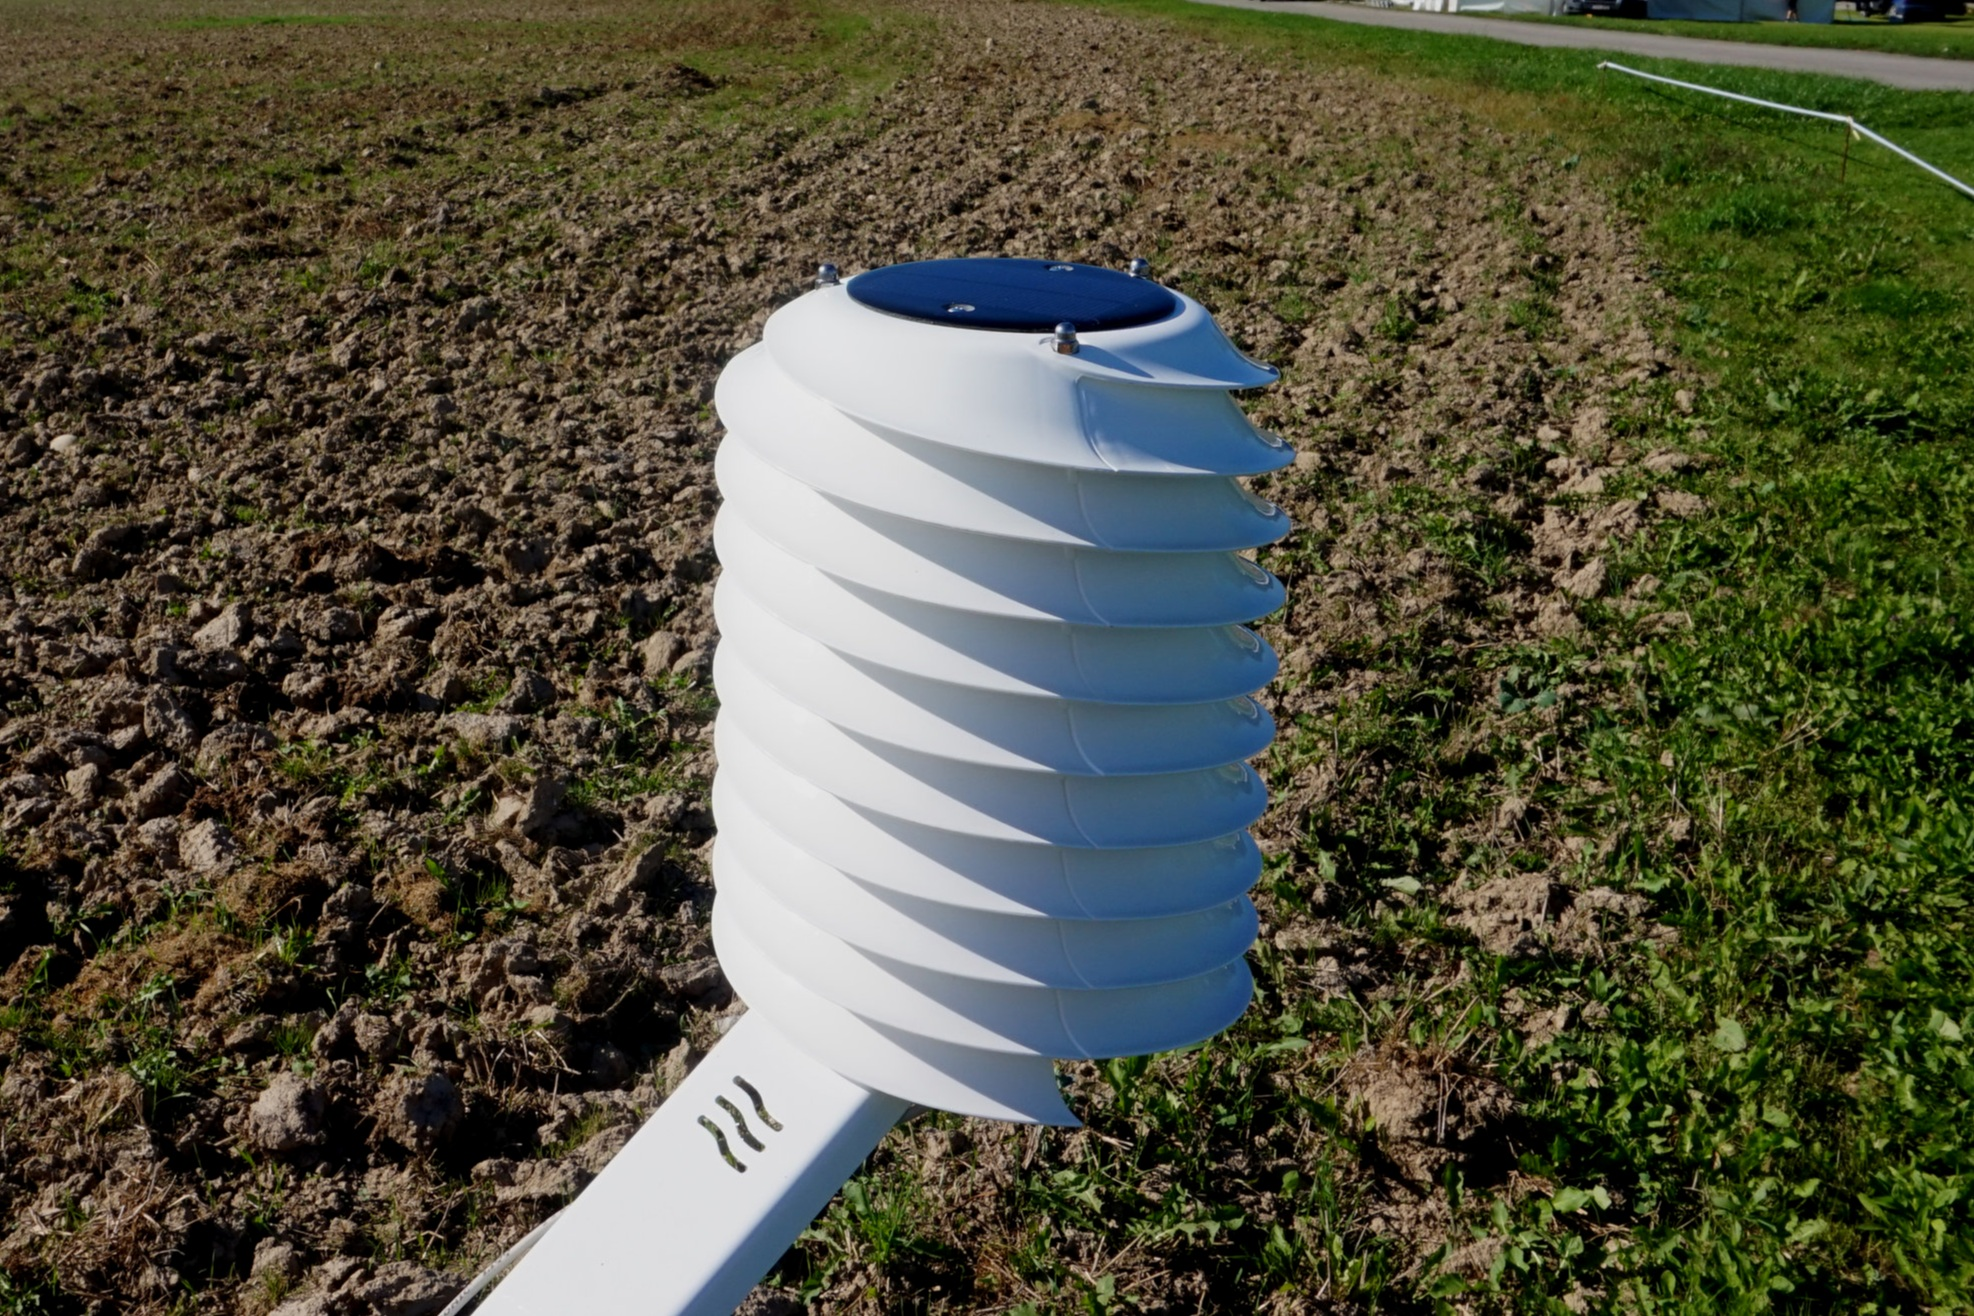 MeteoHelix IoT Pro LoRaWAN micro weather station in agriculture